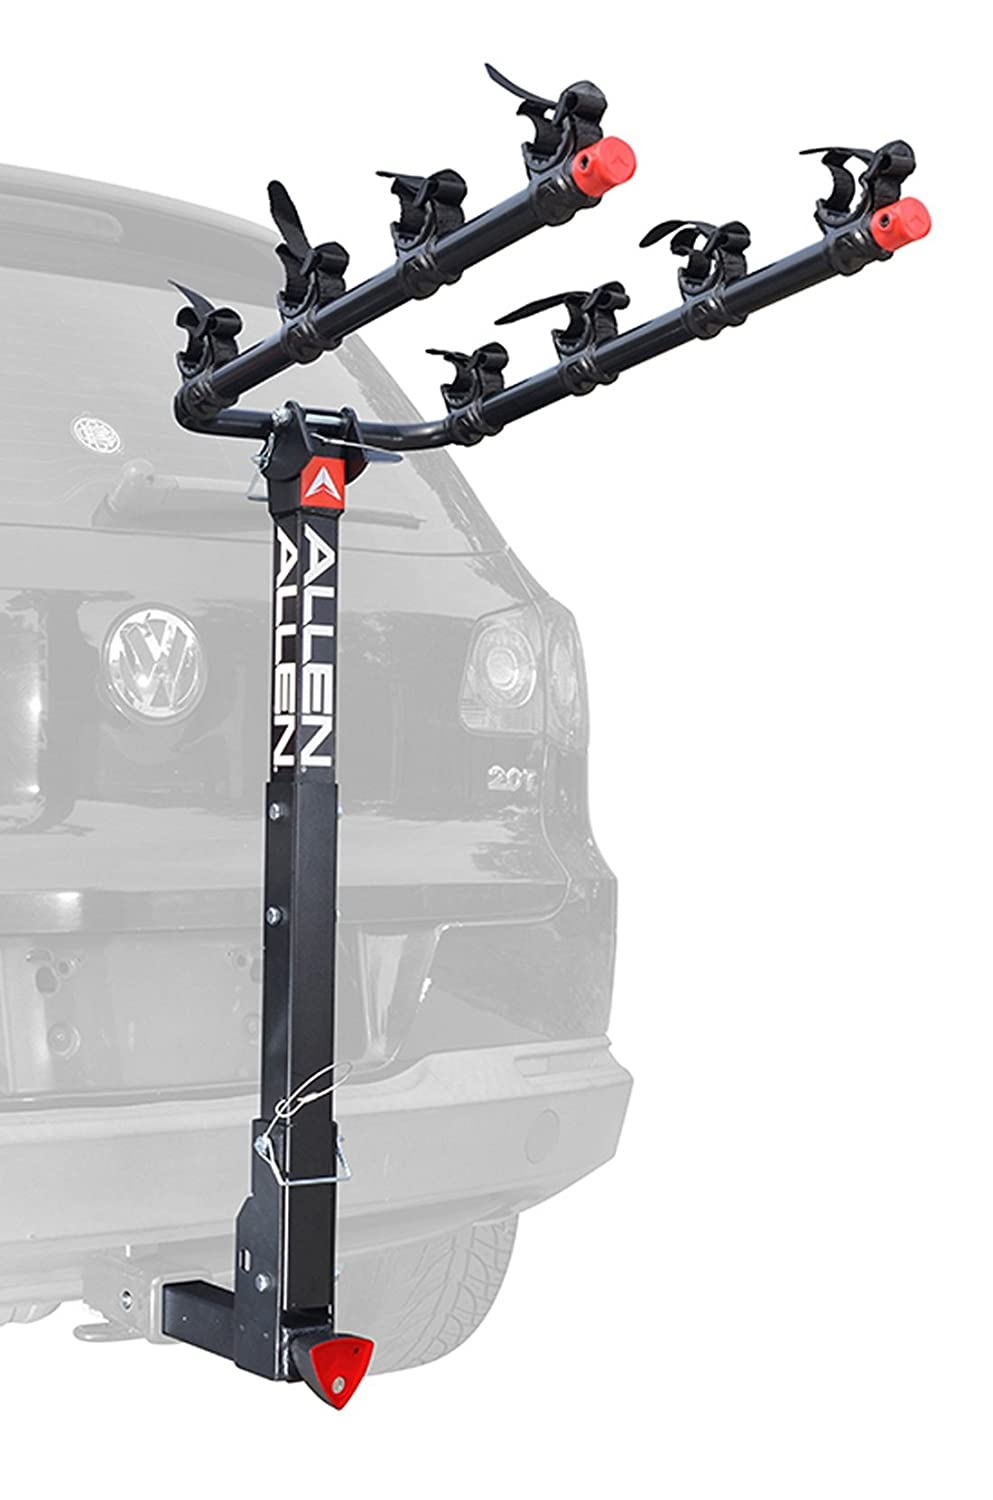 Awesome 10 Best Truck Bed Bike Racks May 2019 Buyer S